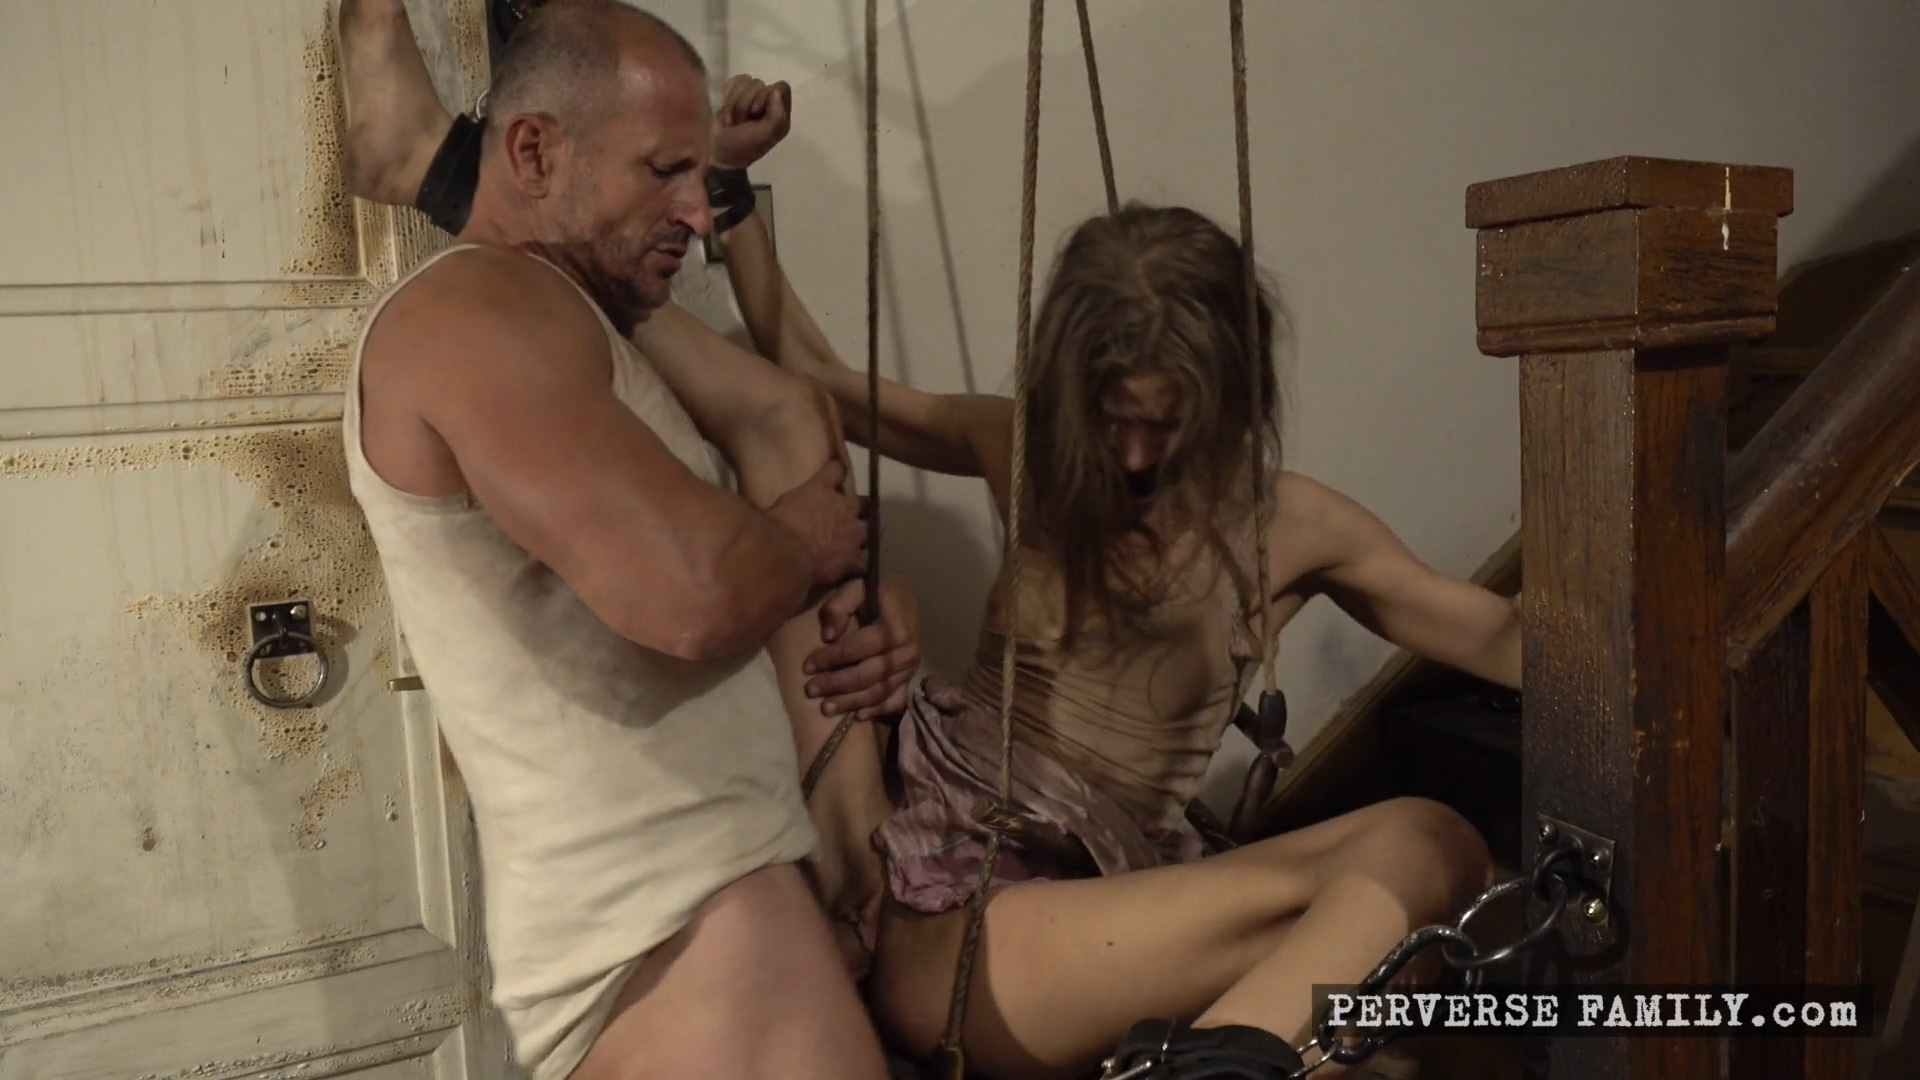 perverse-family-surprise-for-the-family-1920x1080_mp4_20191119_095743_987.jpg